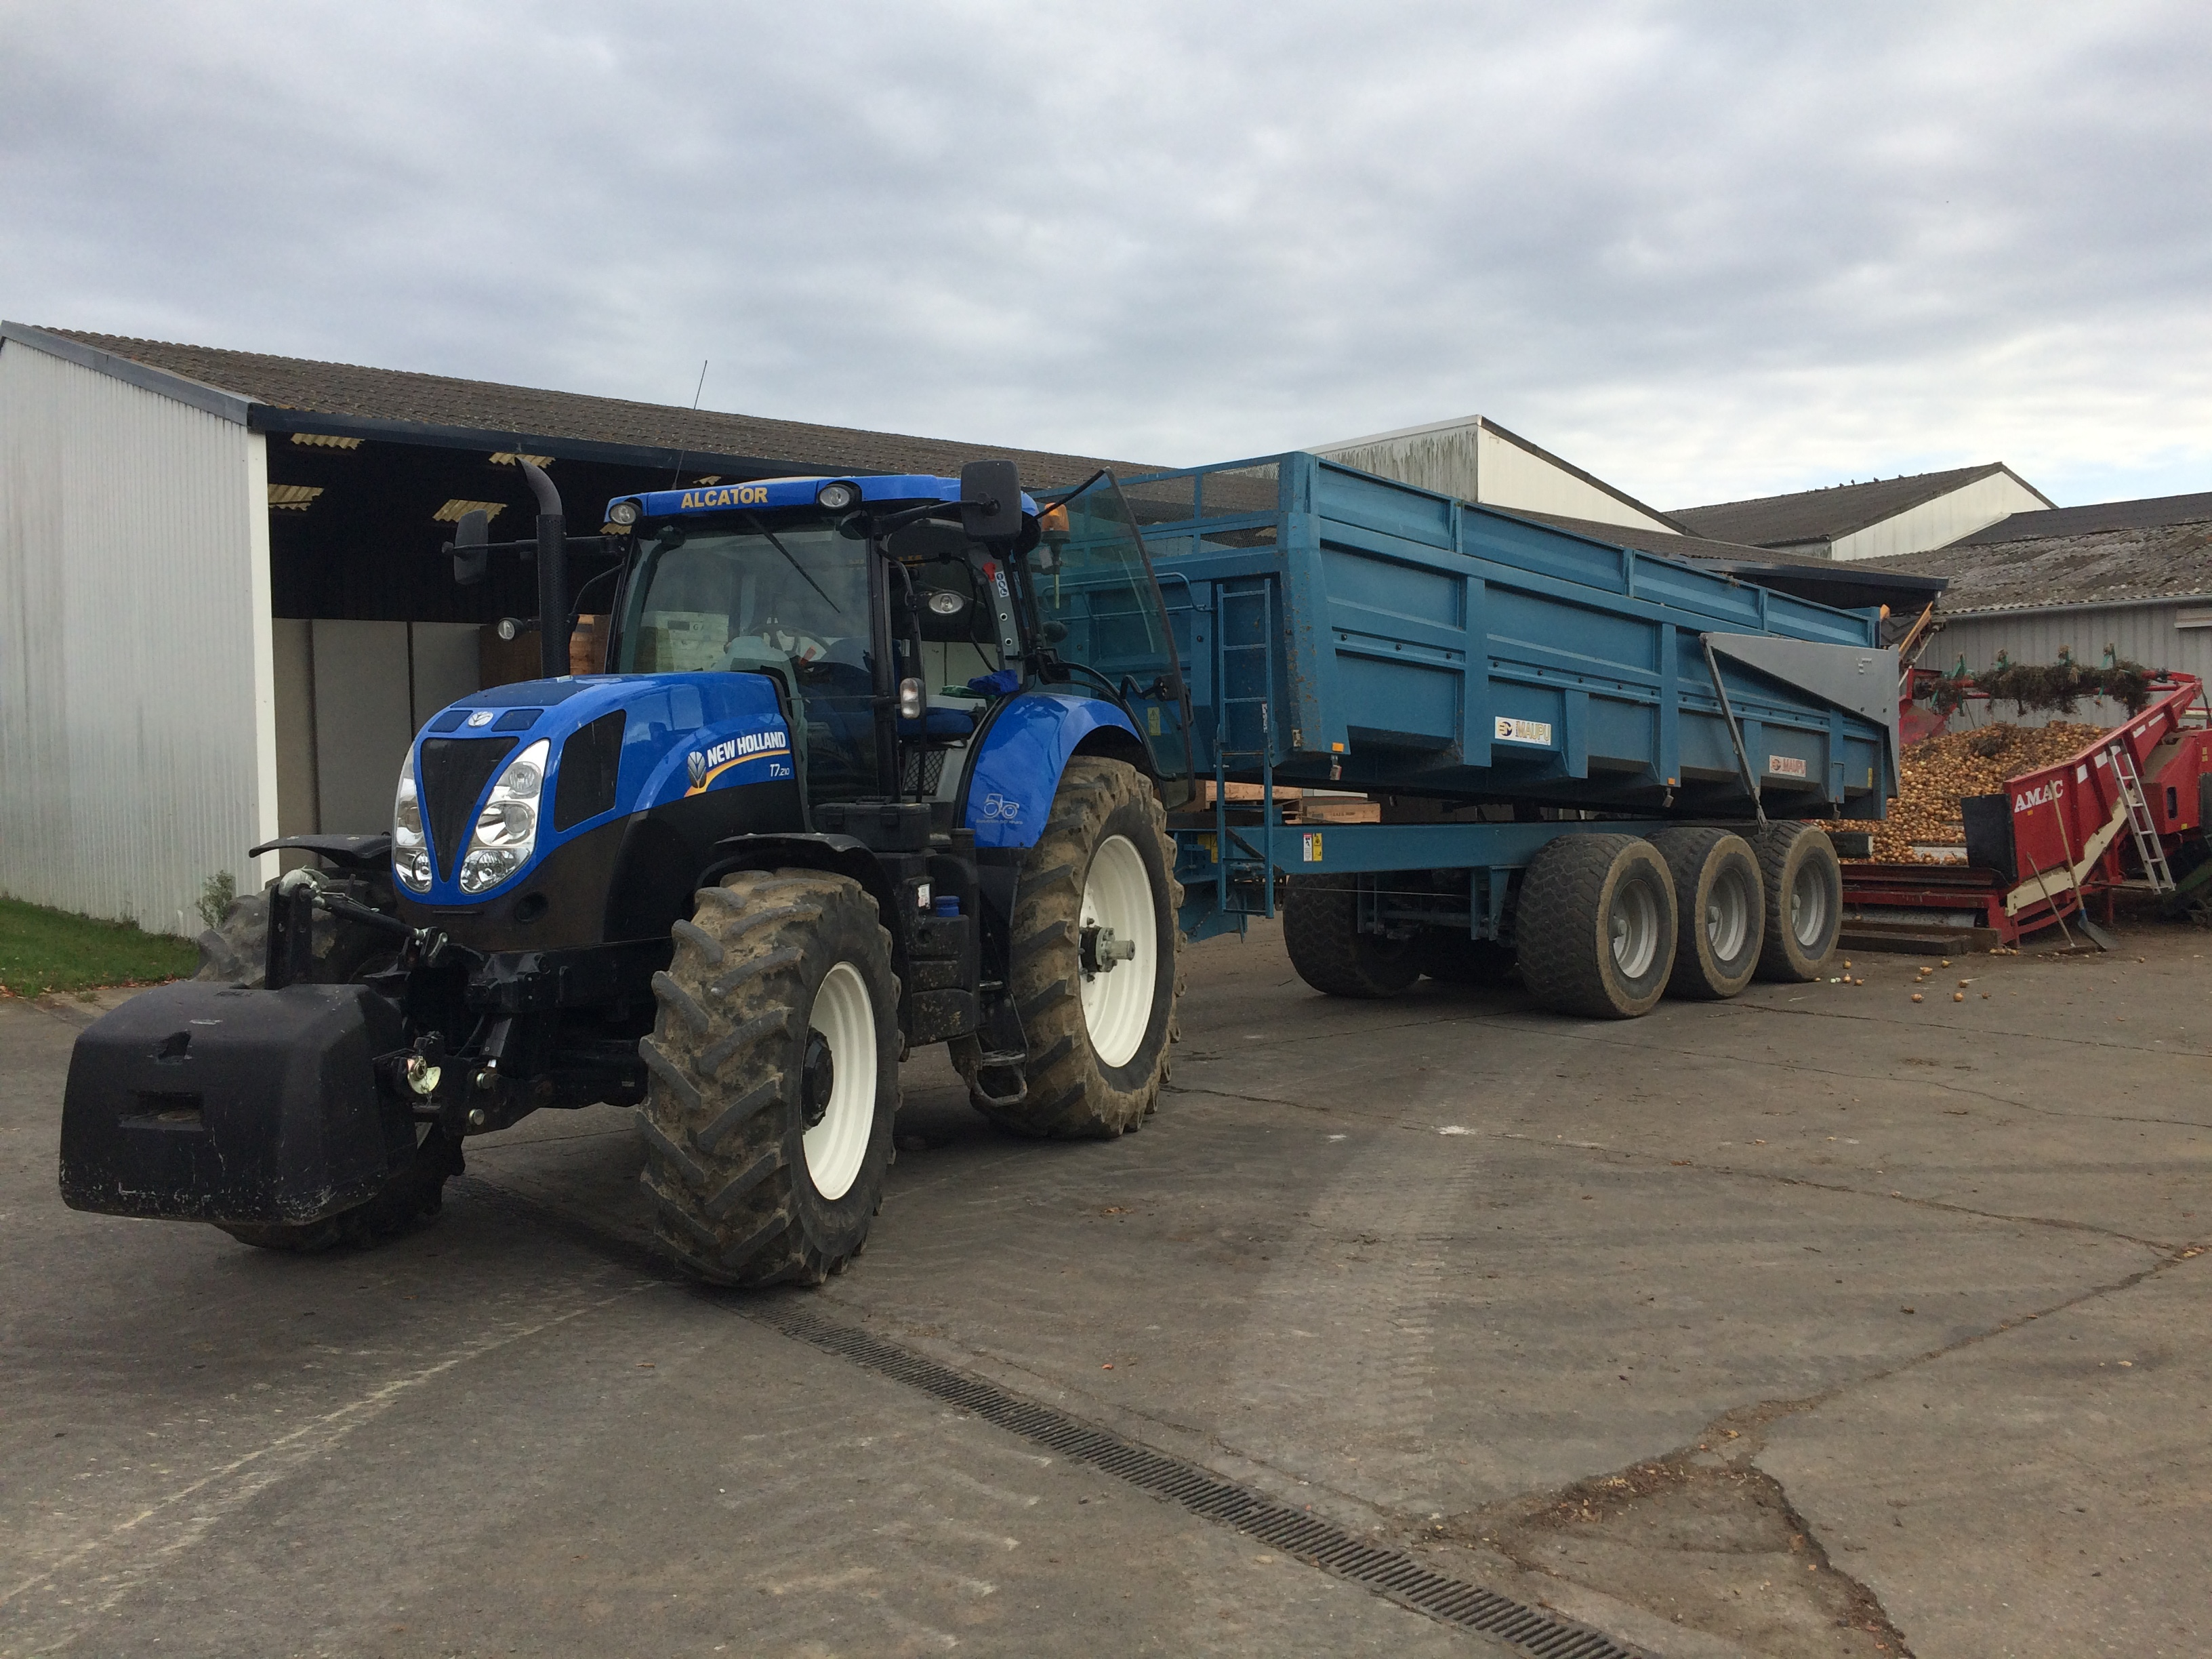 Tracteur New Holland en vente d'occasion chez ALCATOR